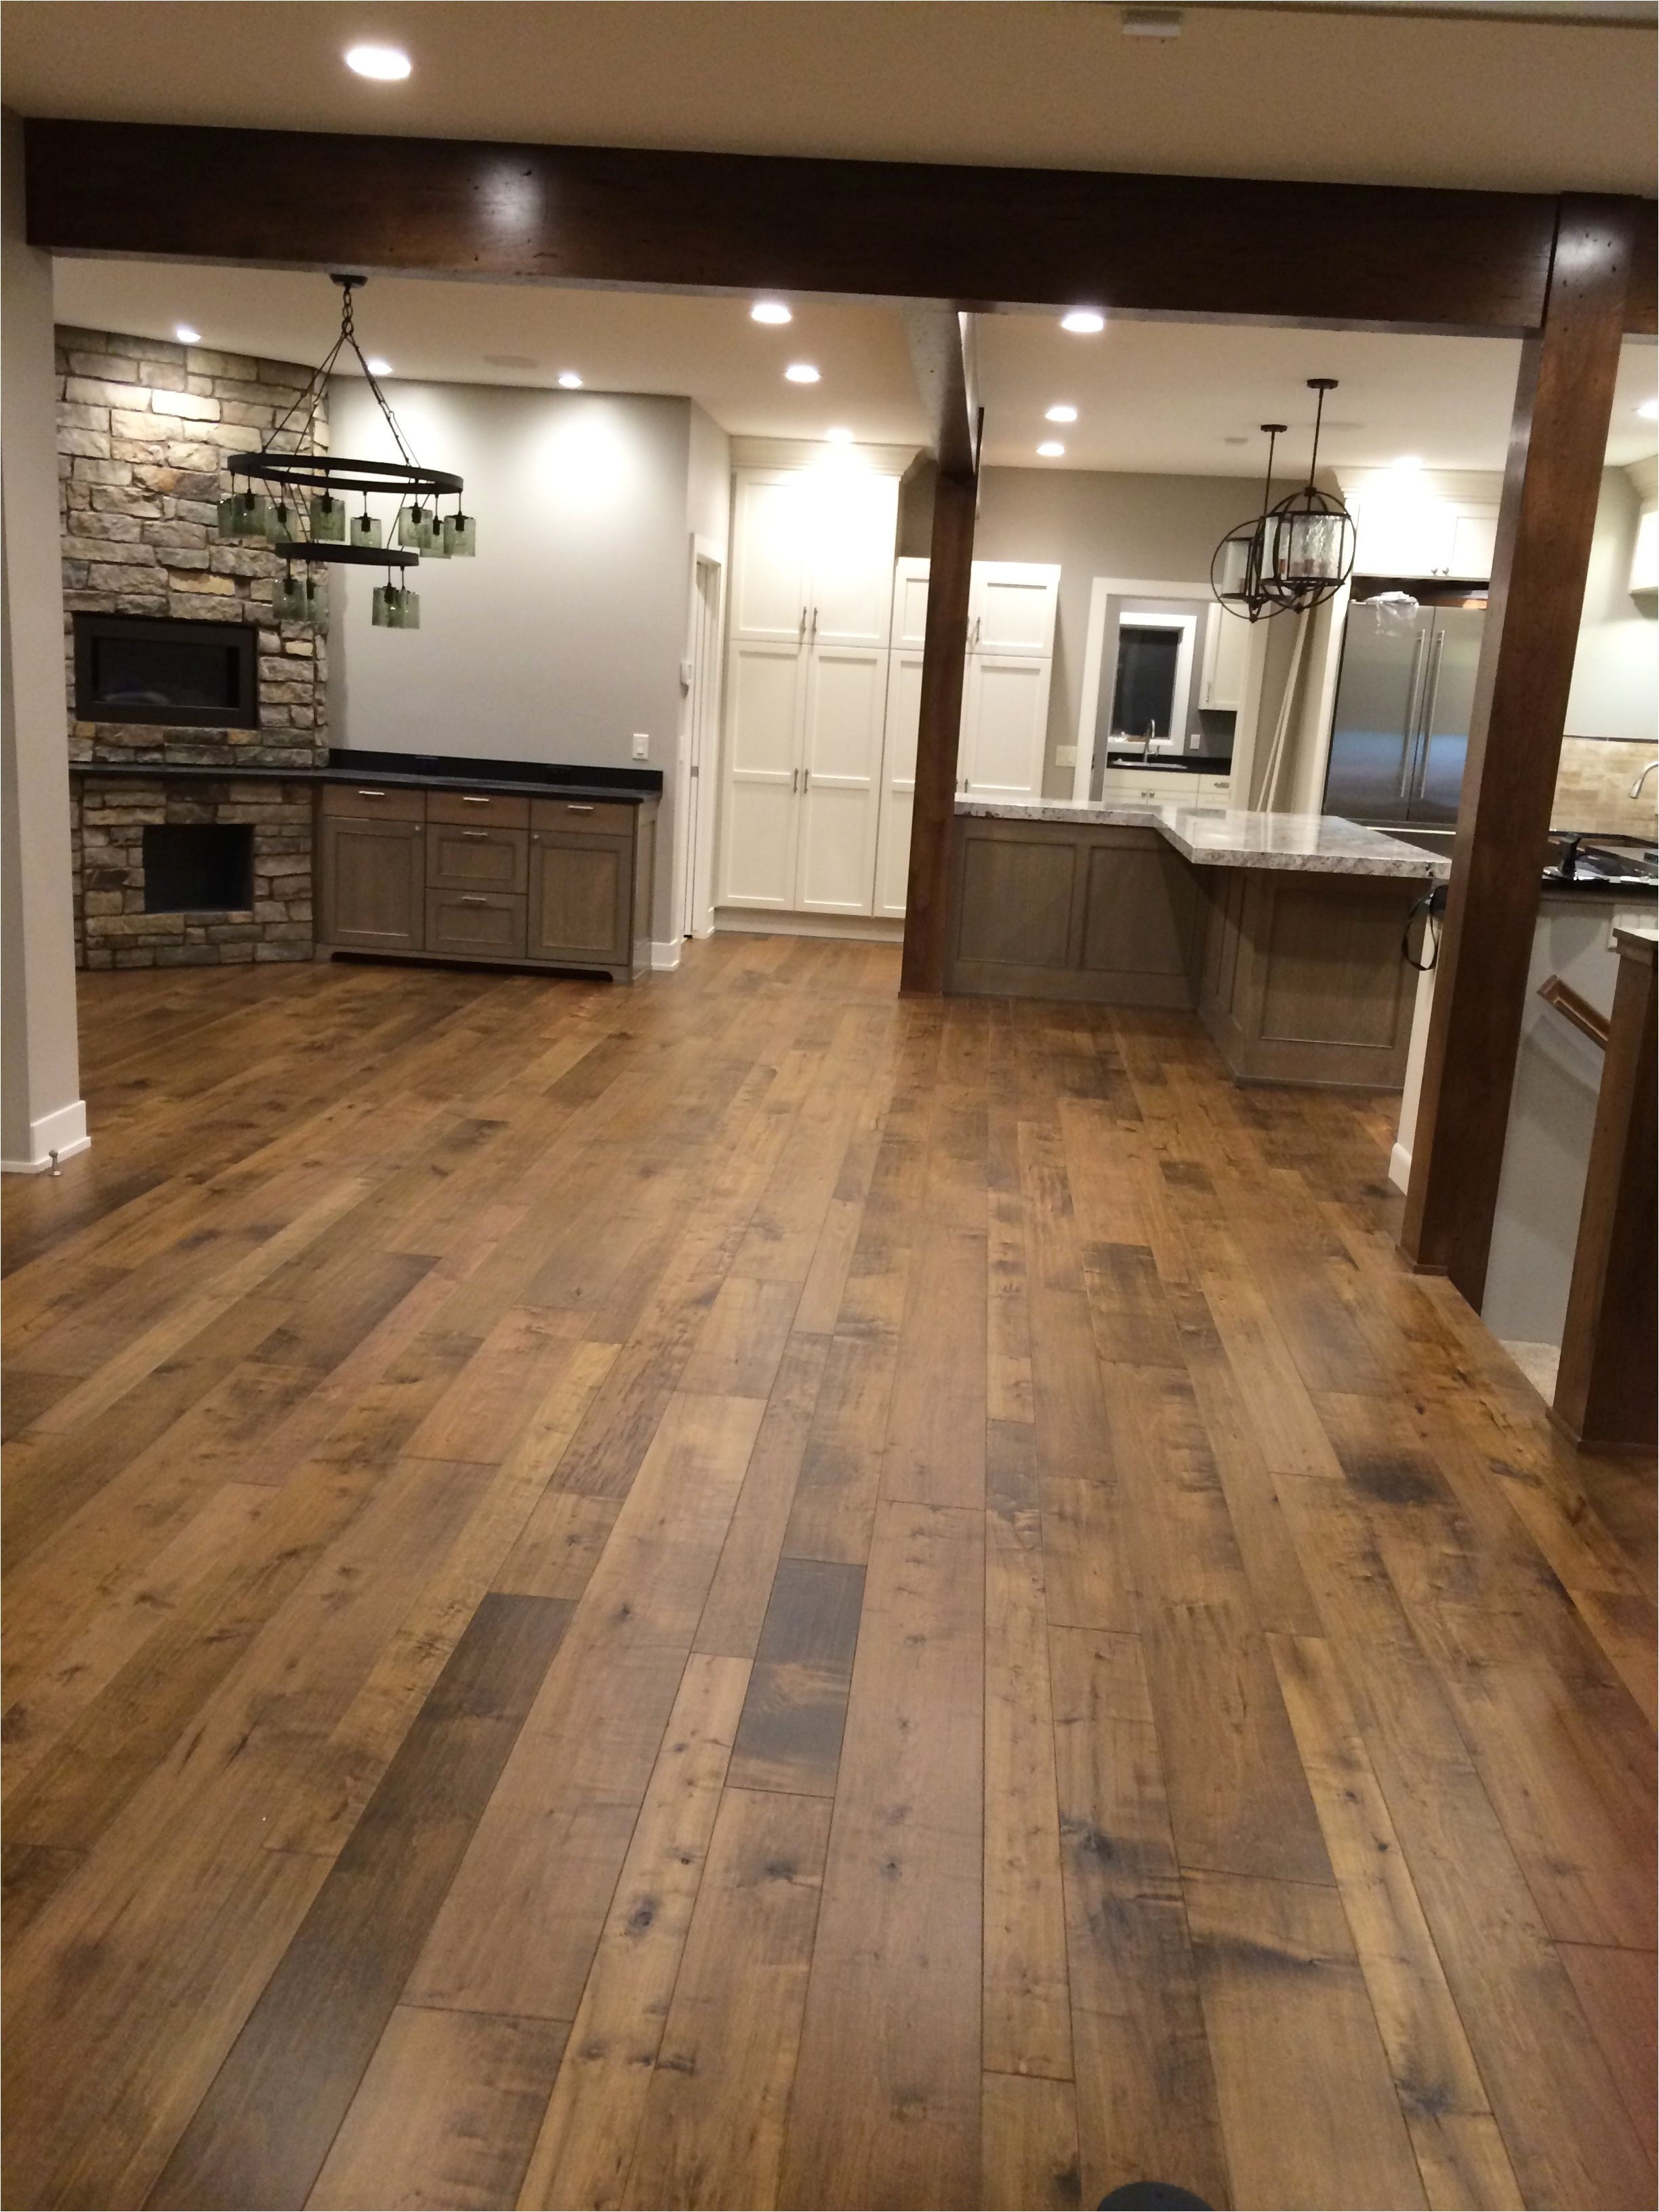 hardwood floor refinishing hickory nc of flooring design ideas find ideas and inspiration for flooring regarding 37 elegant stain laminate flooring stock